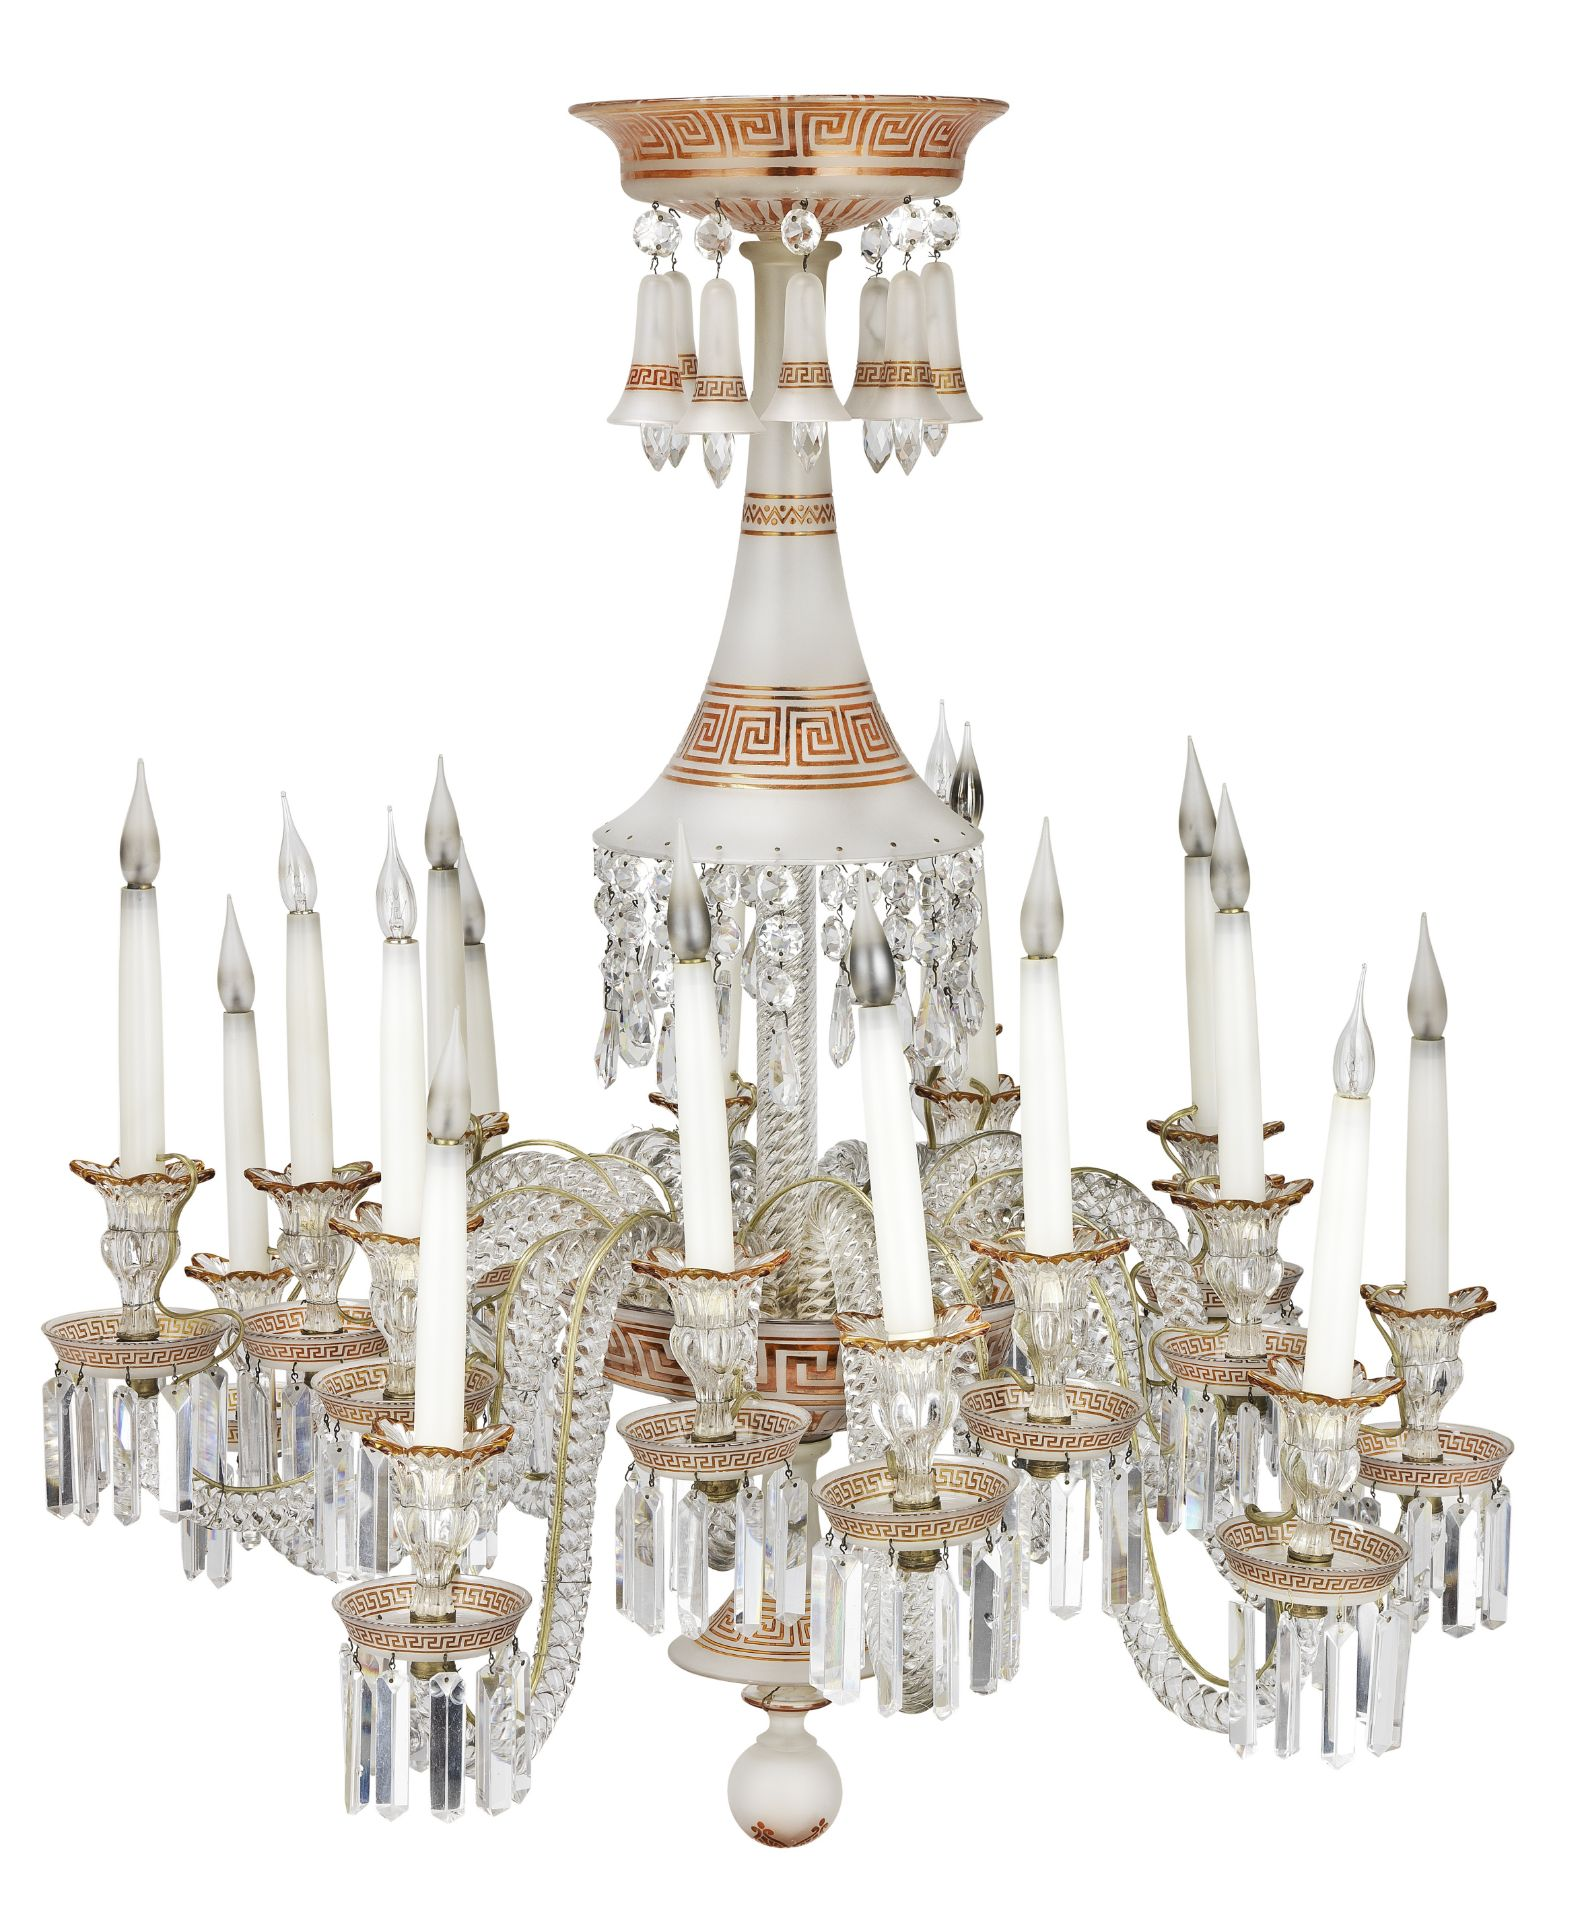 Los 121 - A Baccarat clear, frosted and amber flashed glass eighteen light chandelier